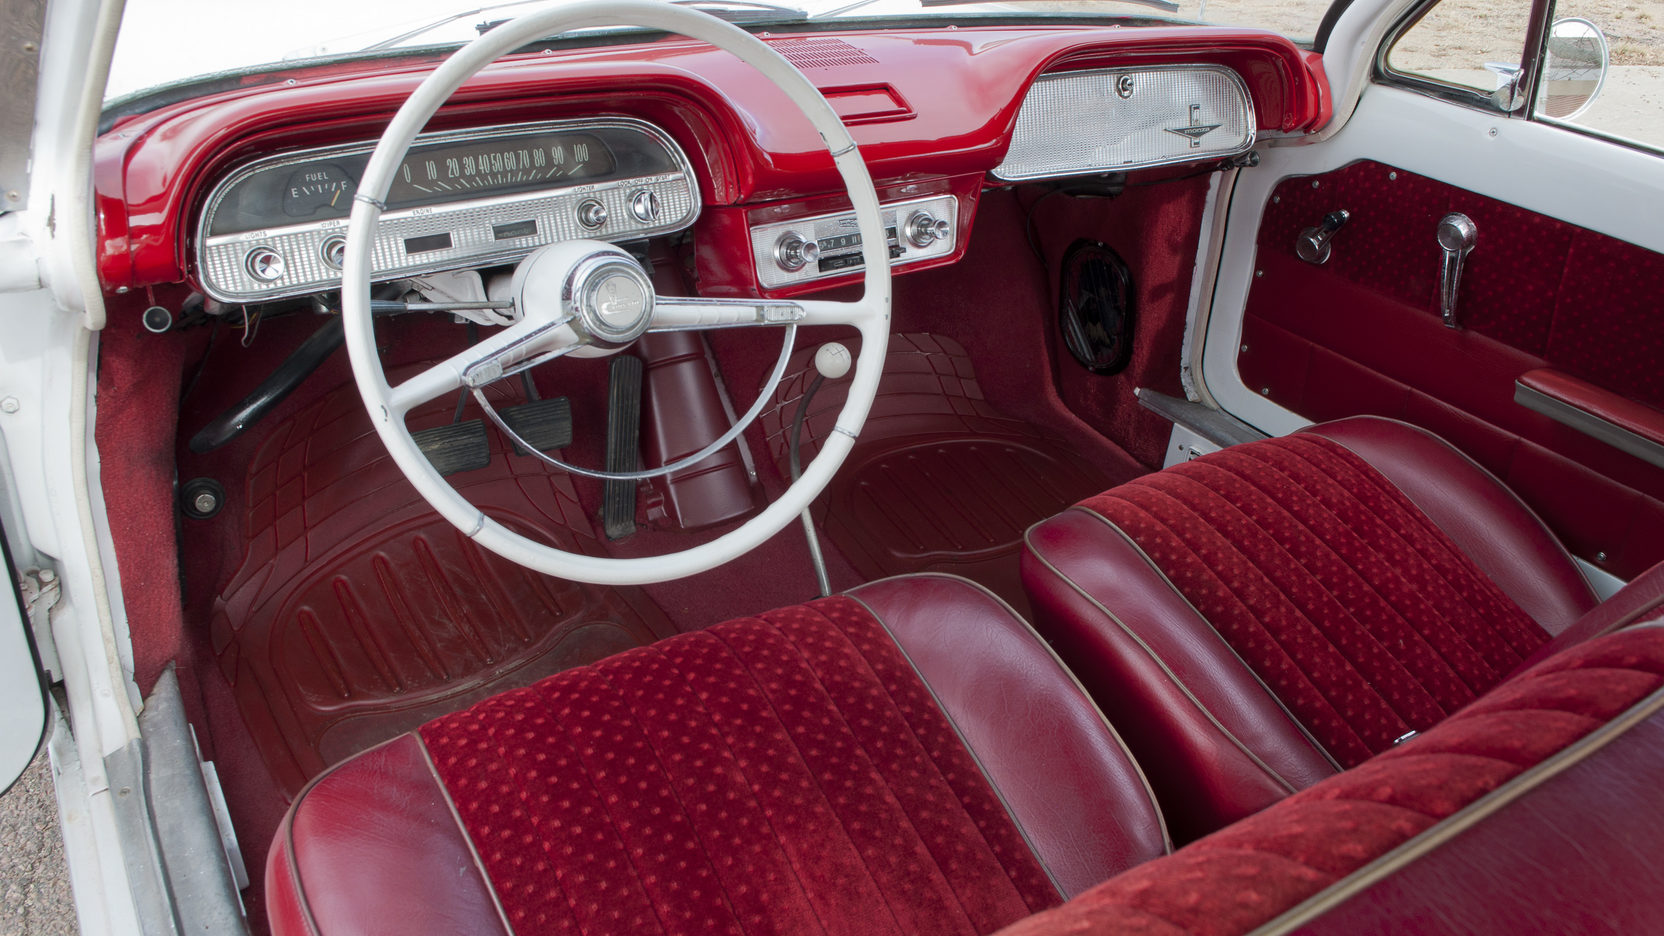 Chevrolet Corvair interior red